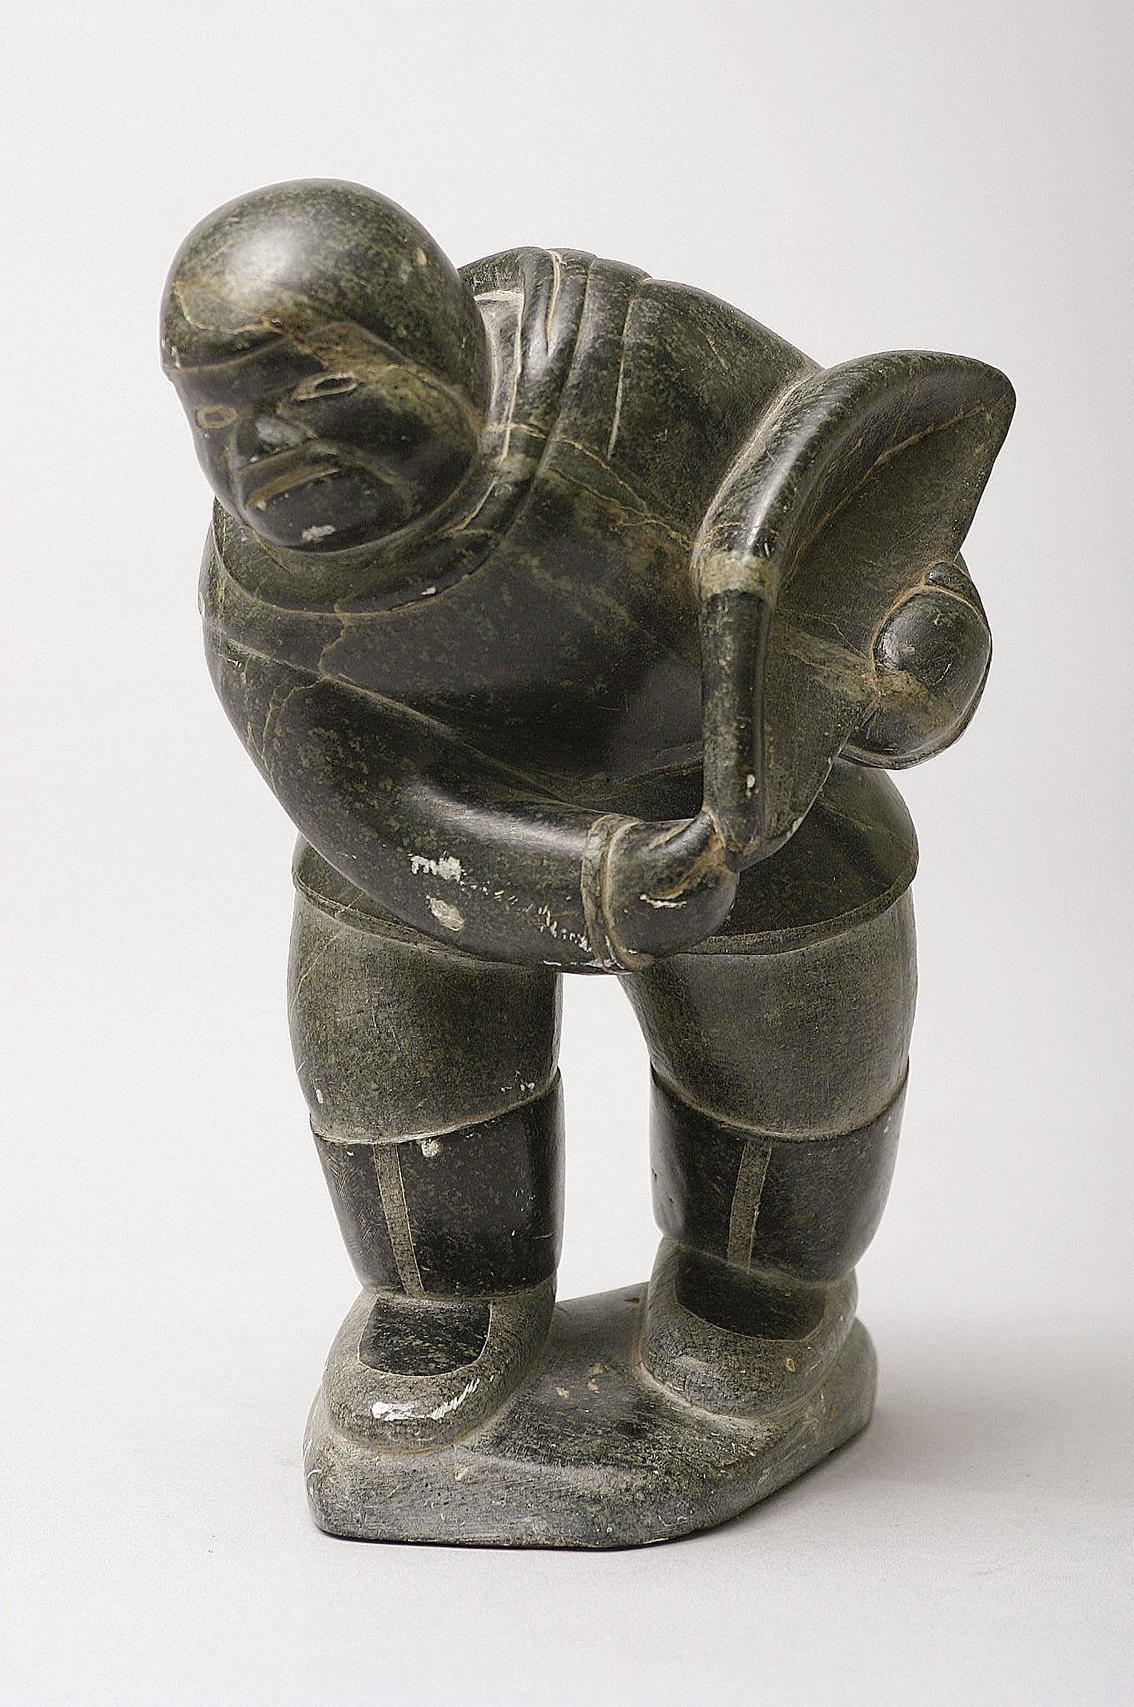 An Art-Déco figure 'Eskimo'